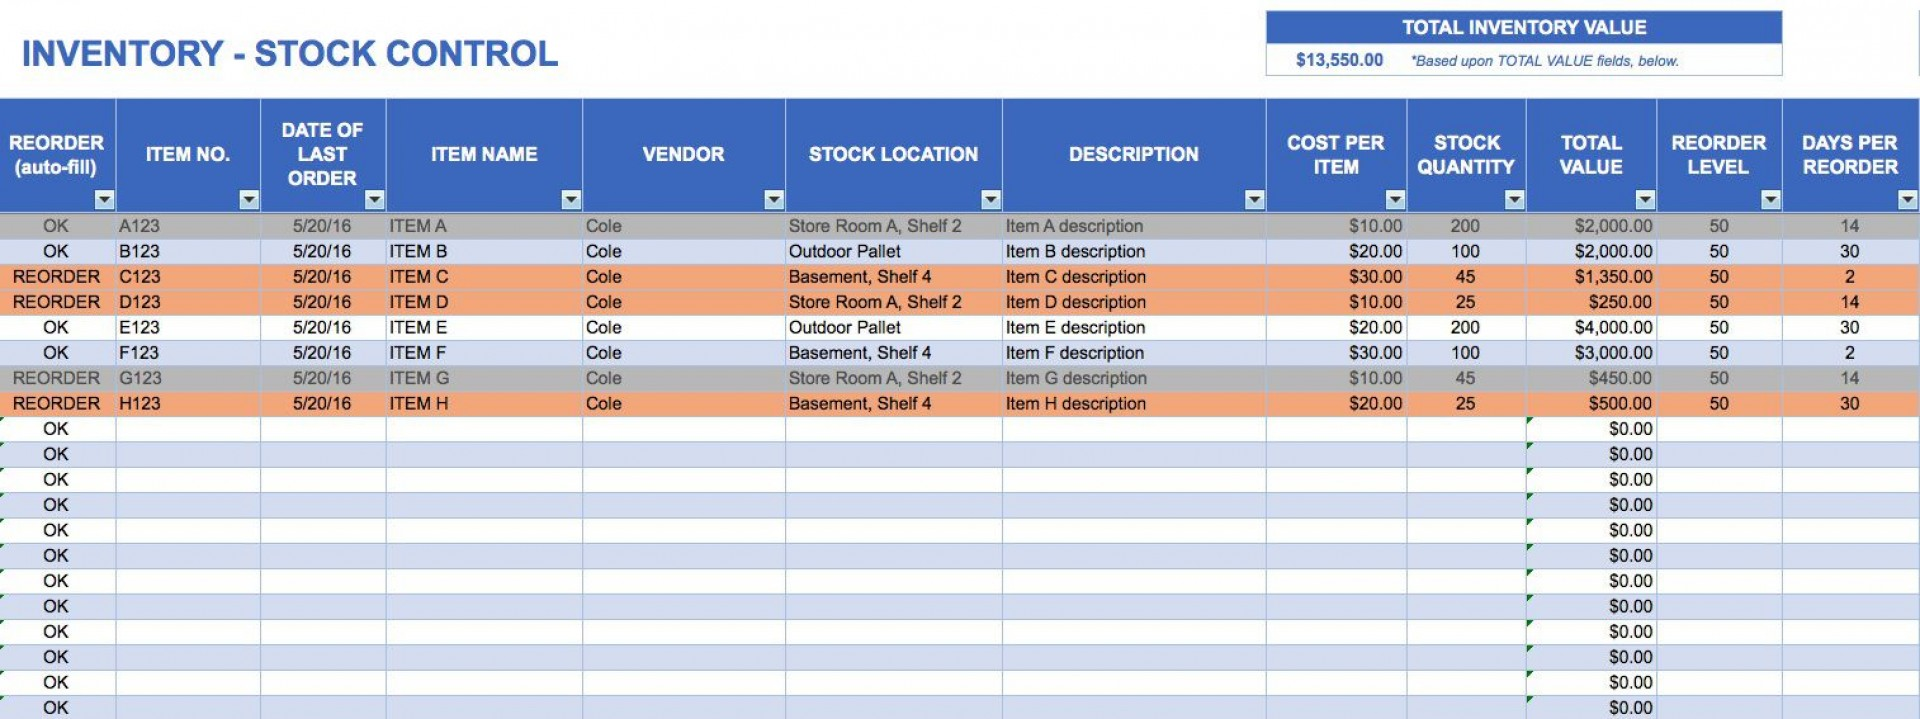 000 Awesome Excel Inventory Template With Formula High Resolution  Formulas Free Uk Pdf1920